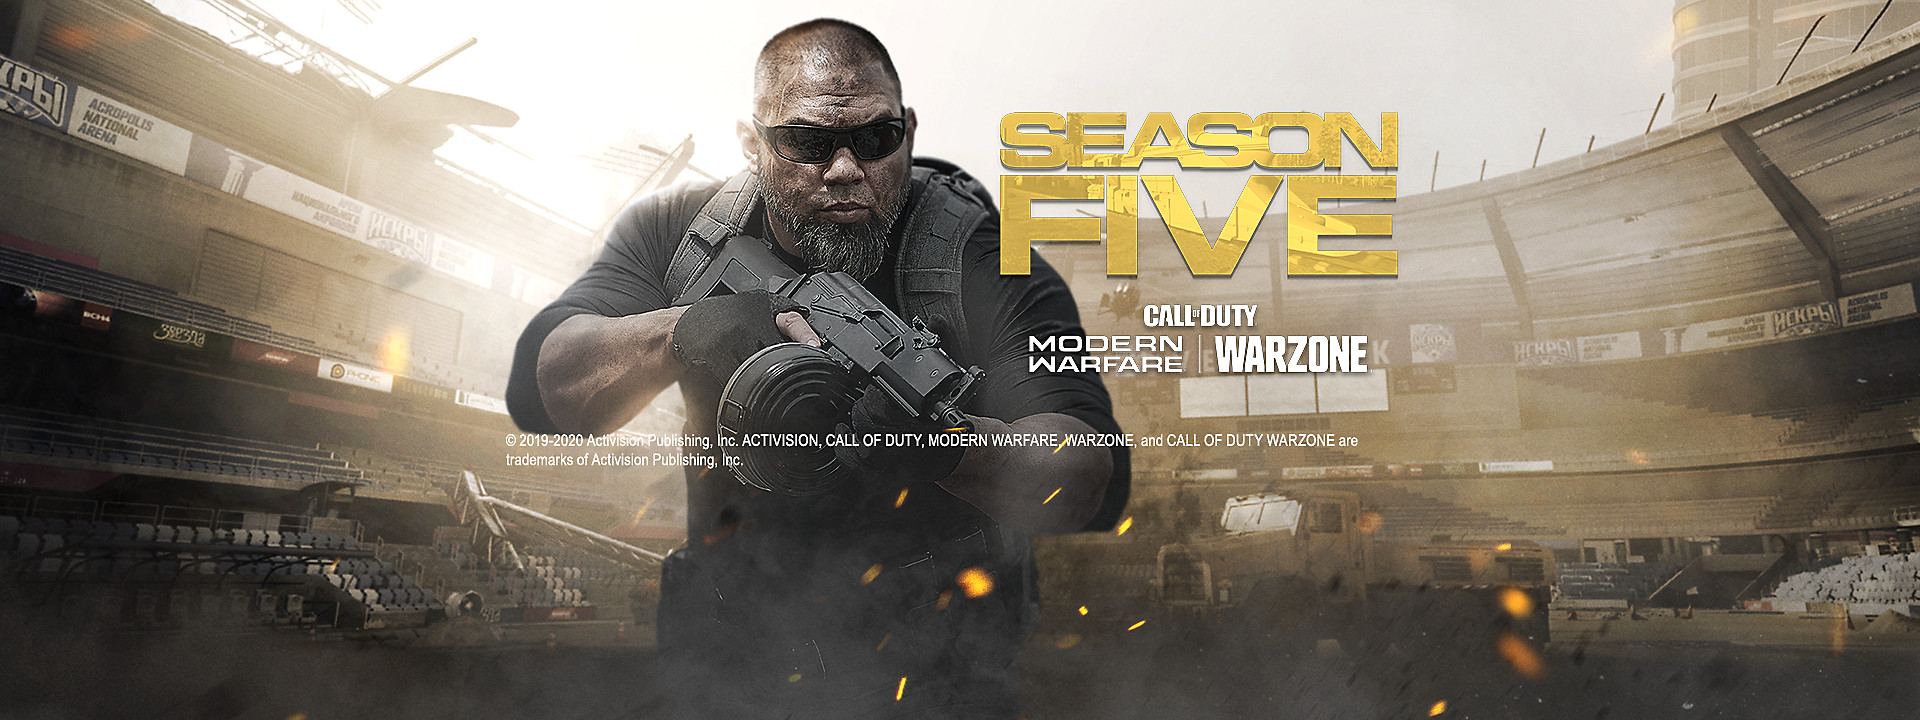 Call of Duty: Modern Warfare - Season Five Now Available